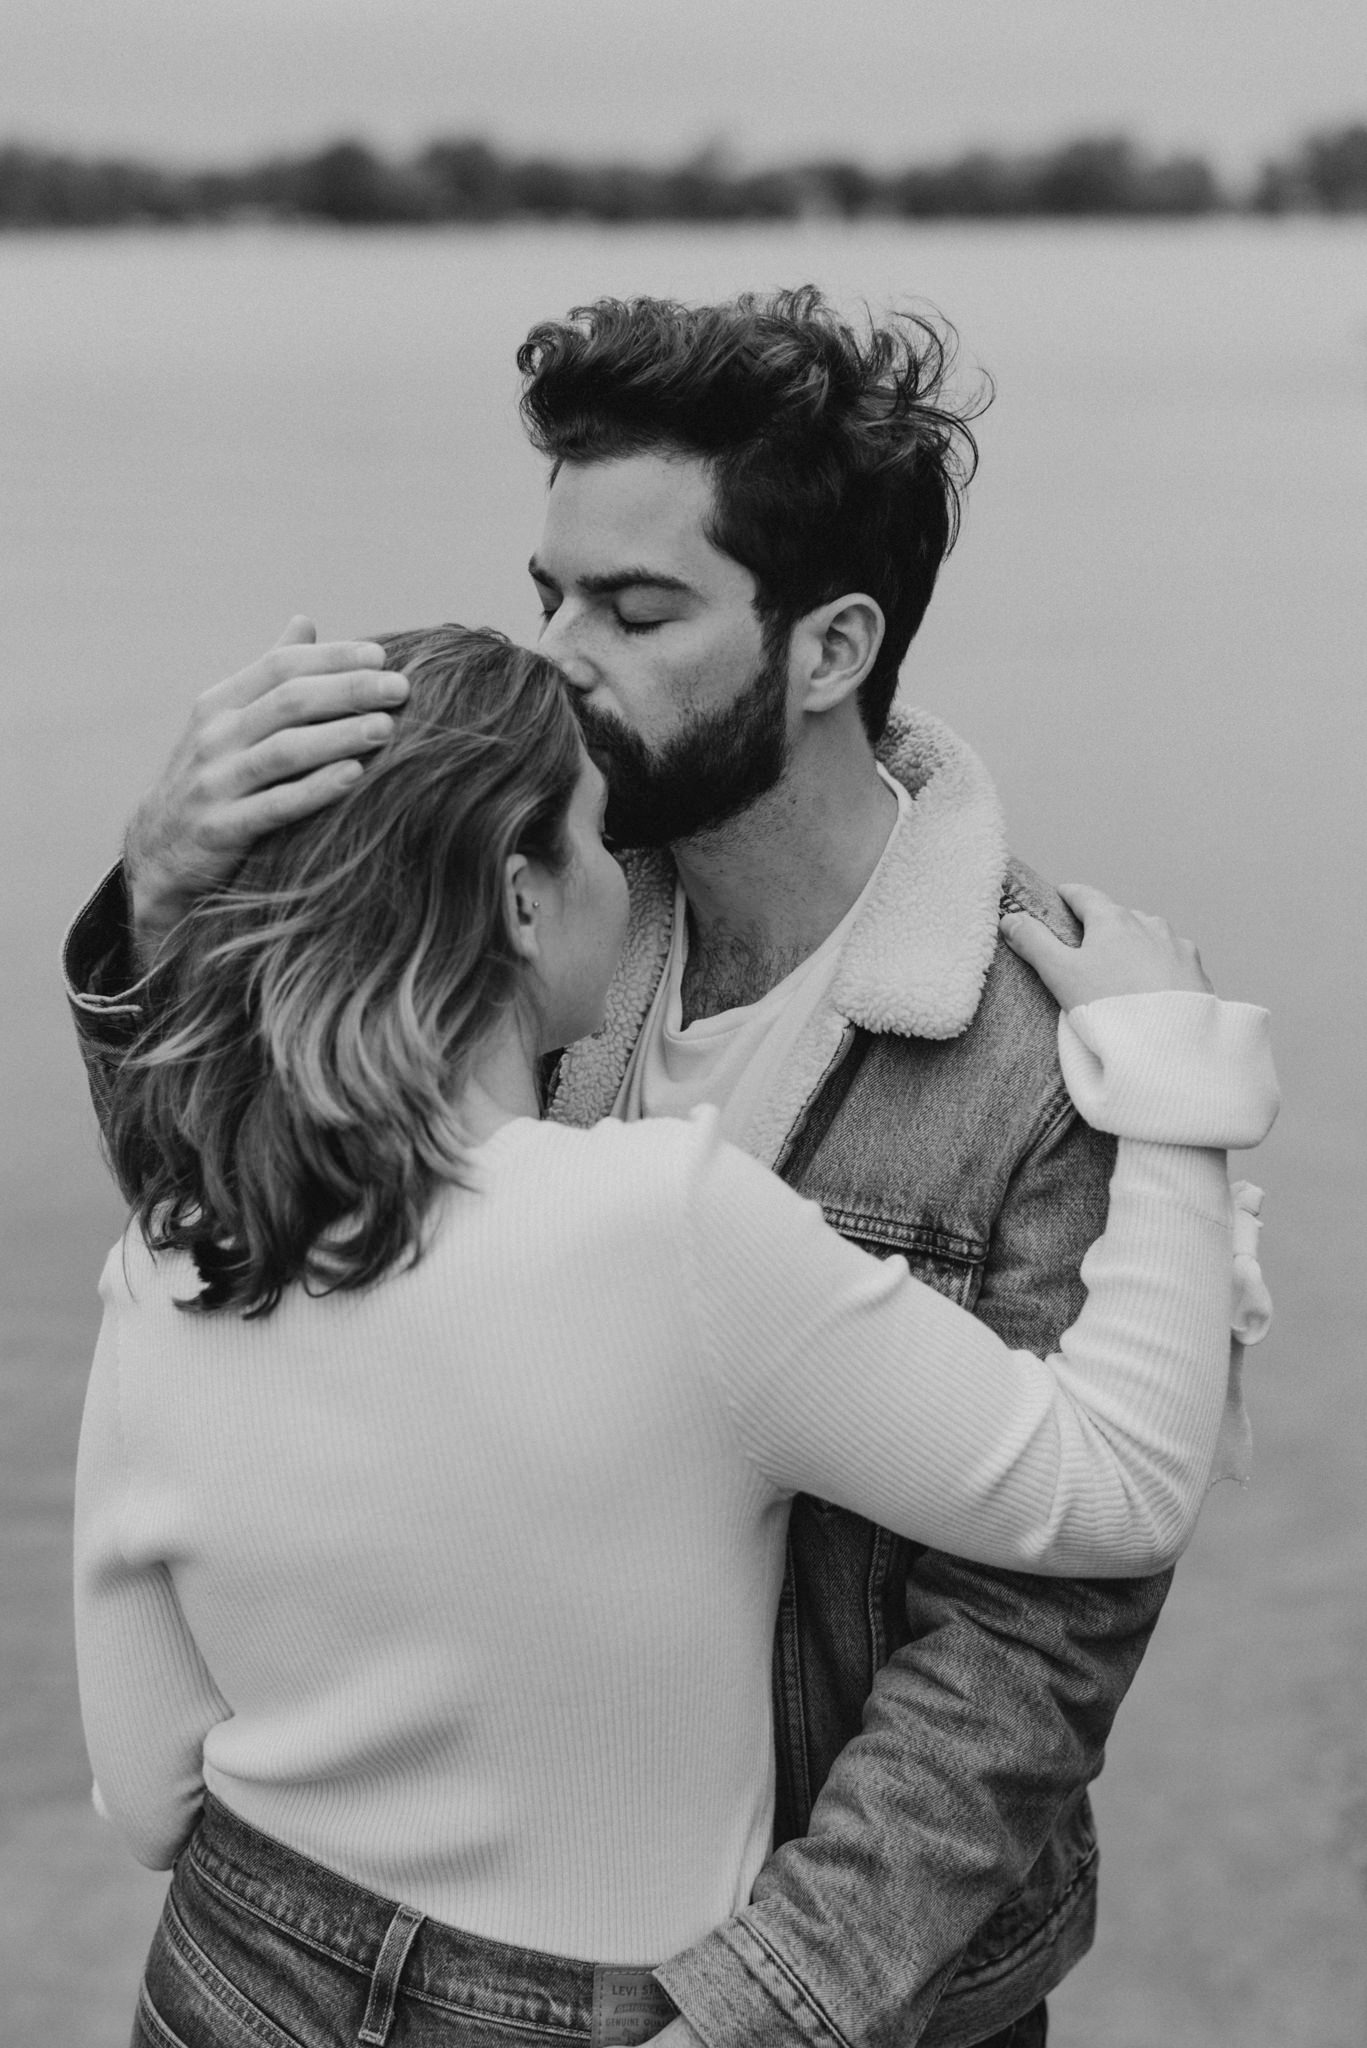 Guy kissing woman on the forehead. Black and white portrait.